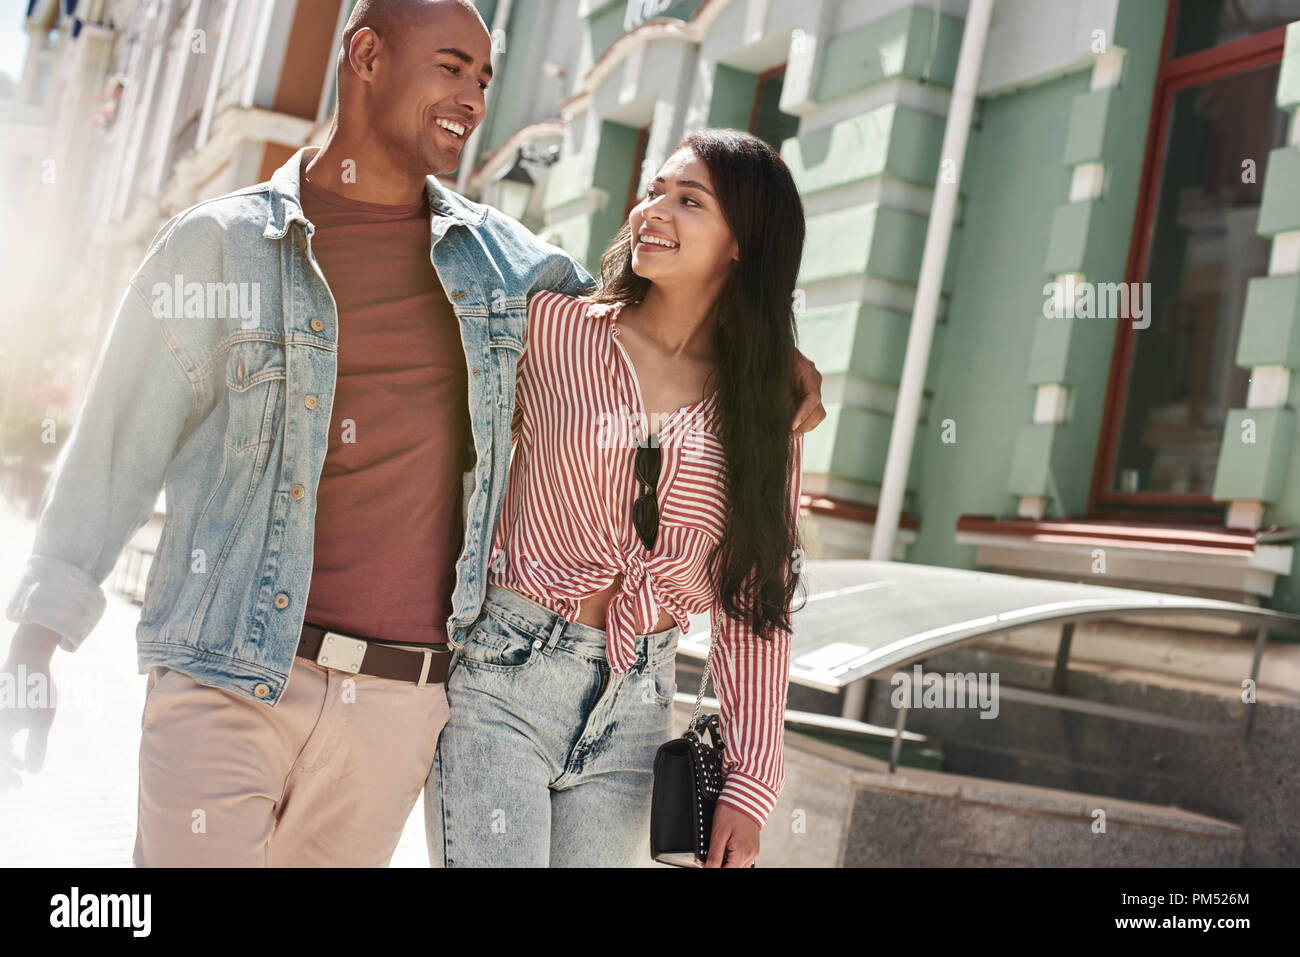 Relation amoureuse. Diverses jeune couple walking on the city street hugging regarder parler smiling happy Photo Stock